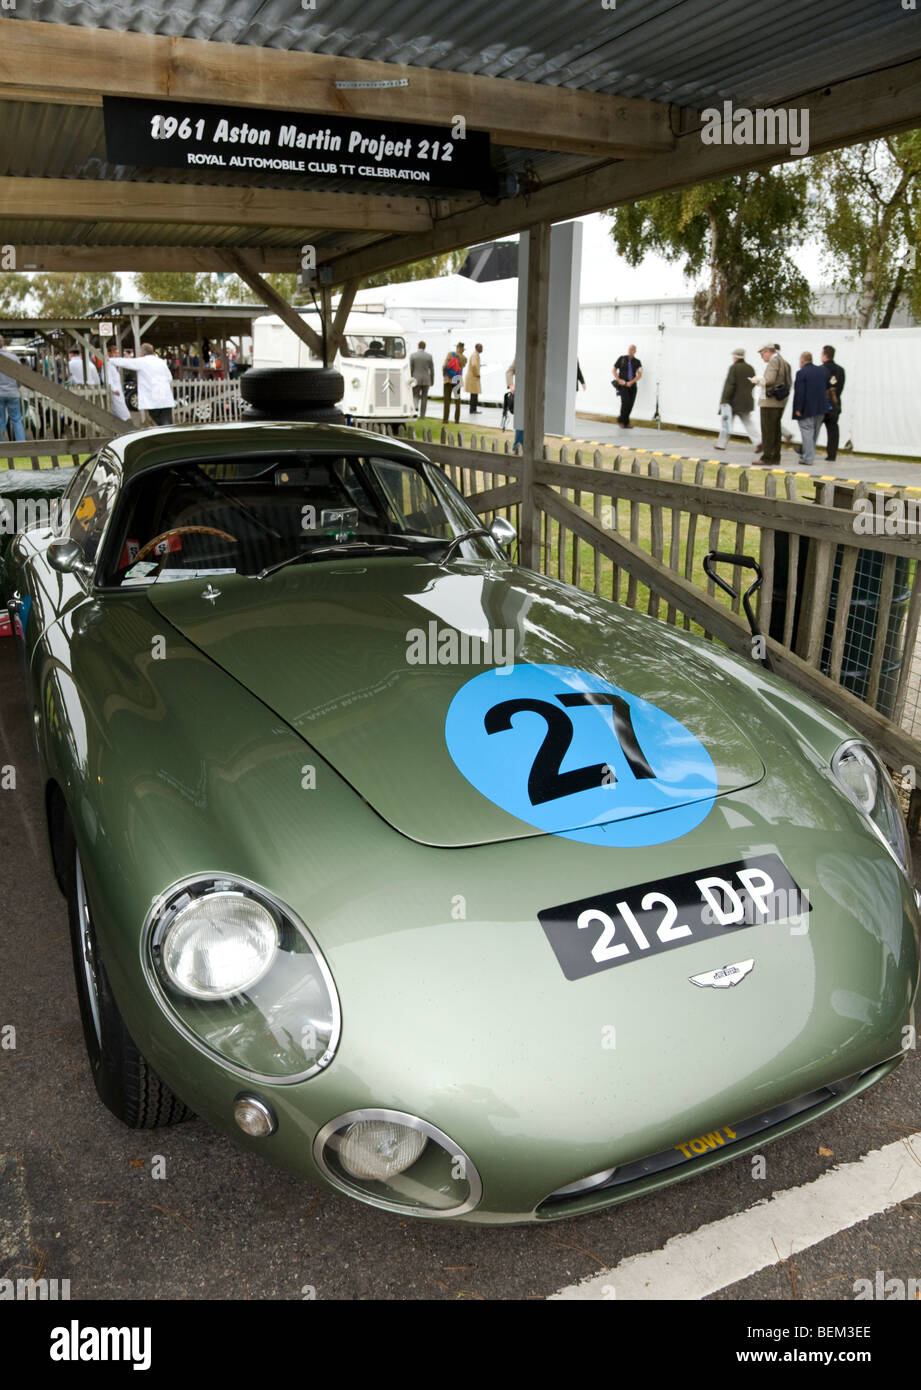 1961 Aston Martin Project 212 in the paddock at the Goodwood Revival meeting, Sussex, UK. - Stock Image